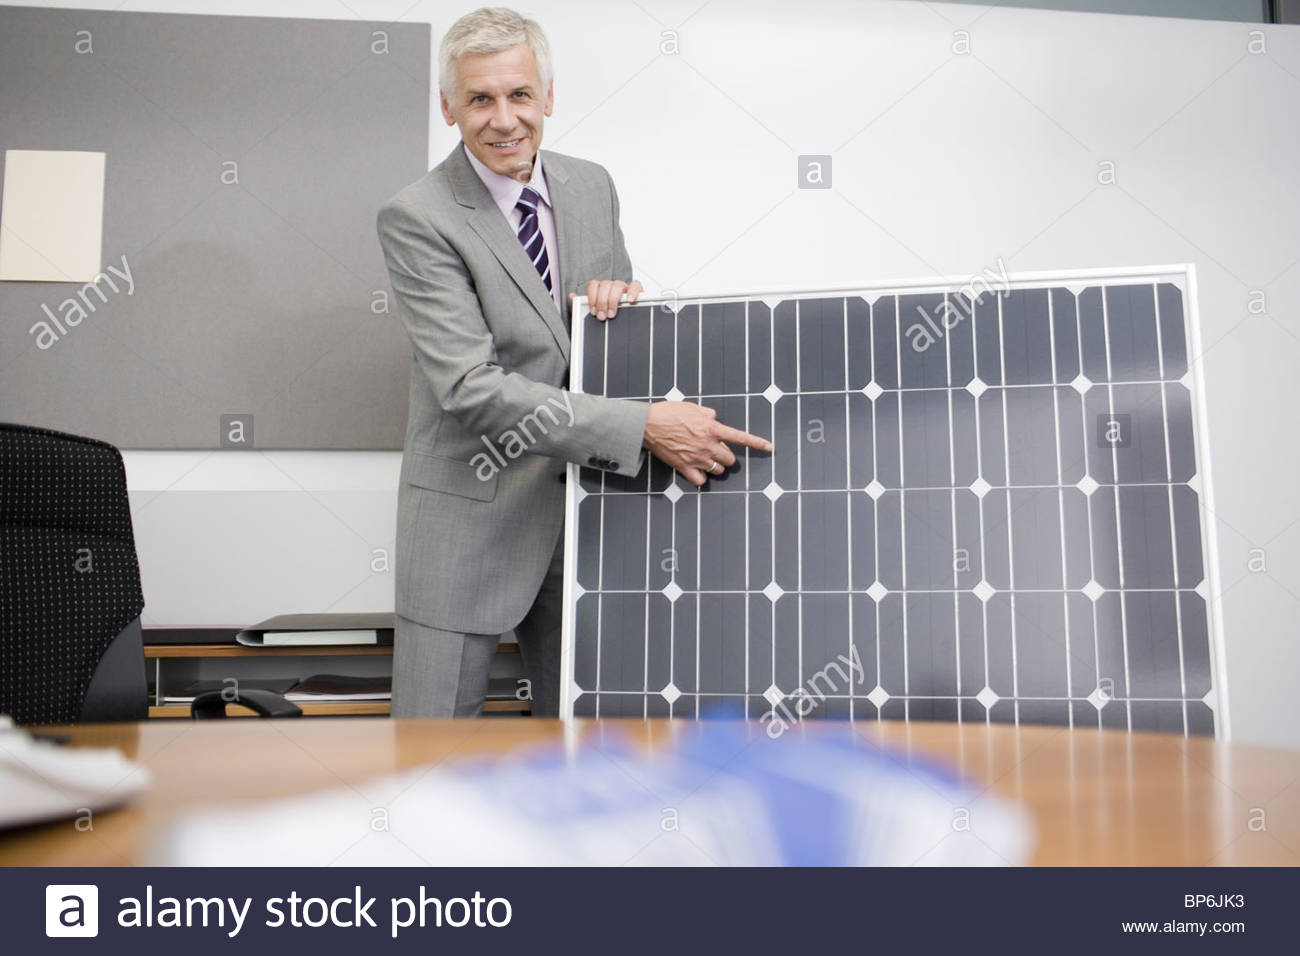 A mature businessman in an office demonstrating a solar panel - Stock Image